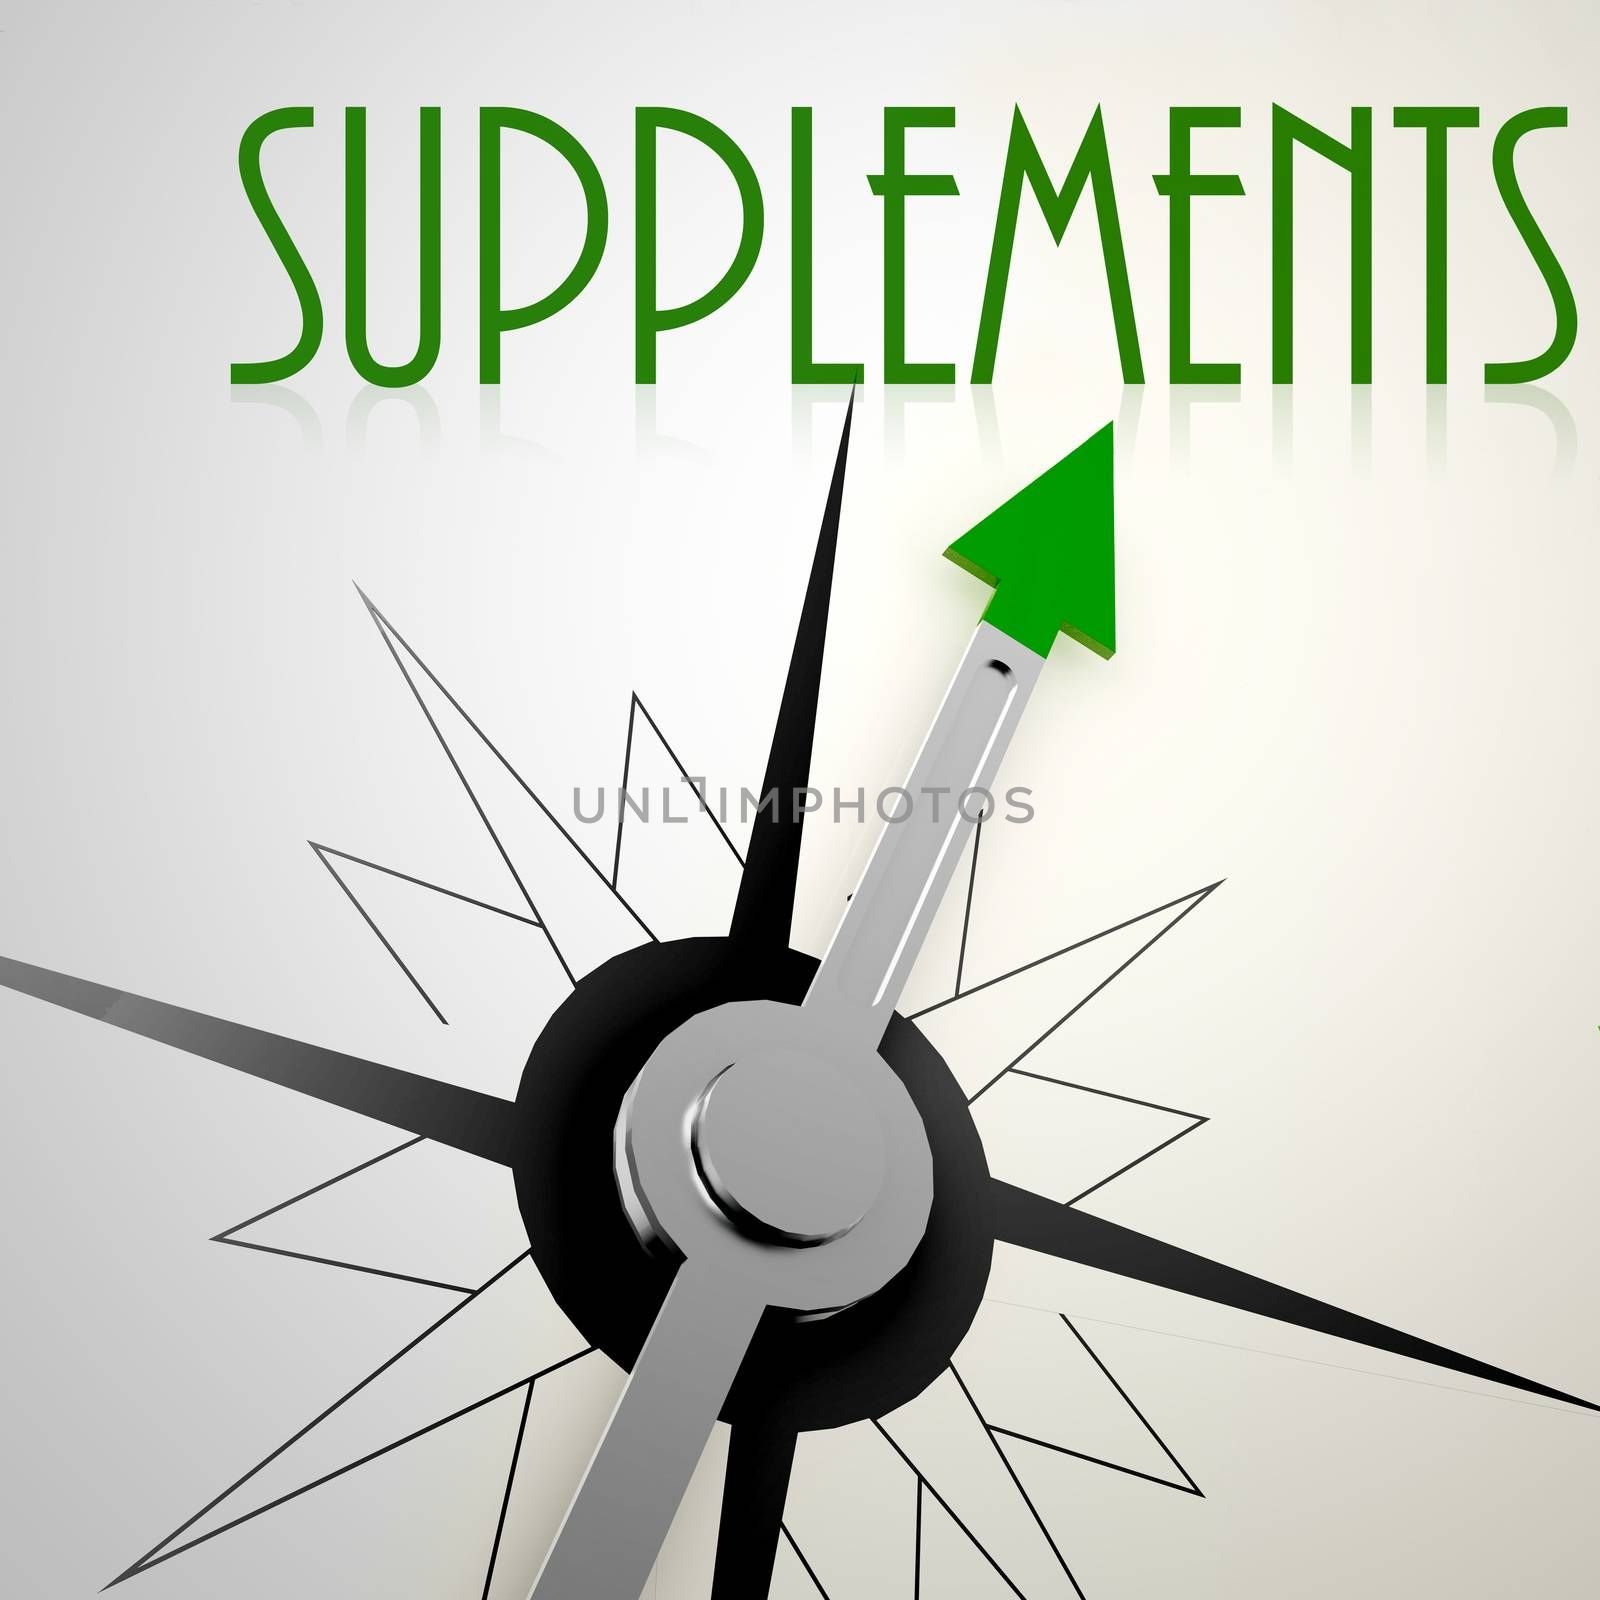 Supplements on green compass. Concept of healthy lifestyle